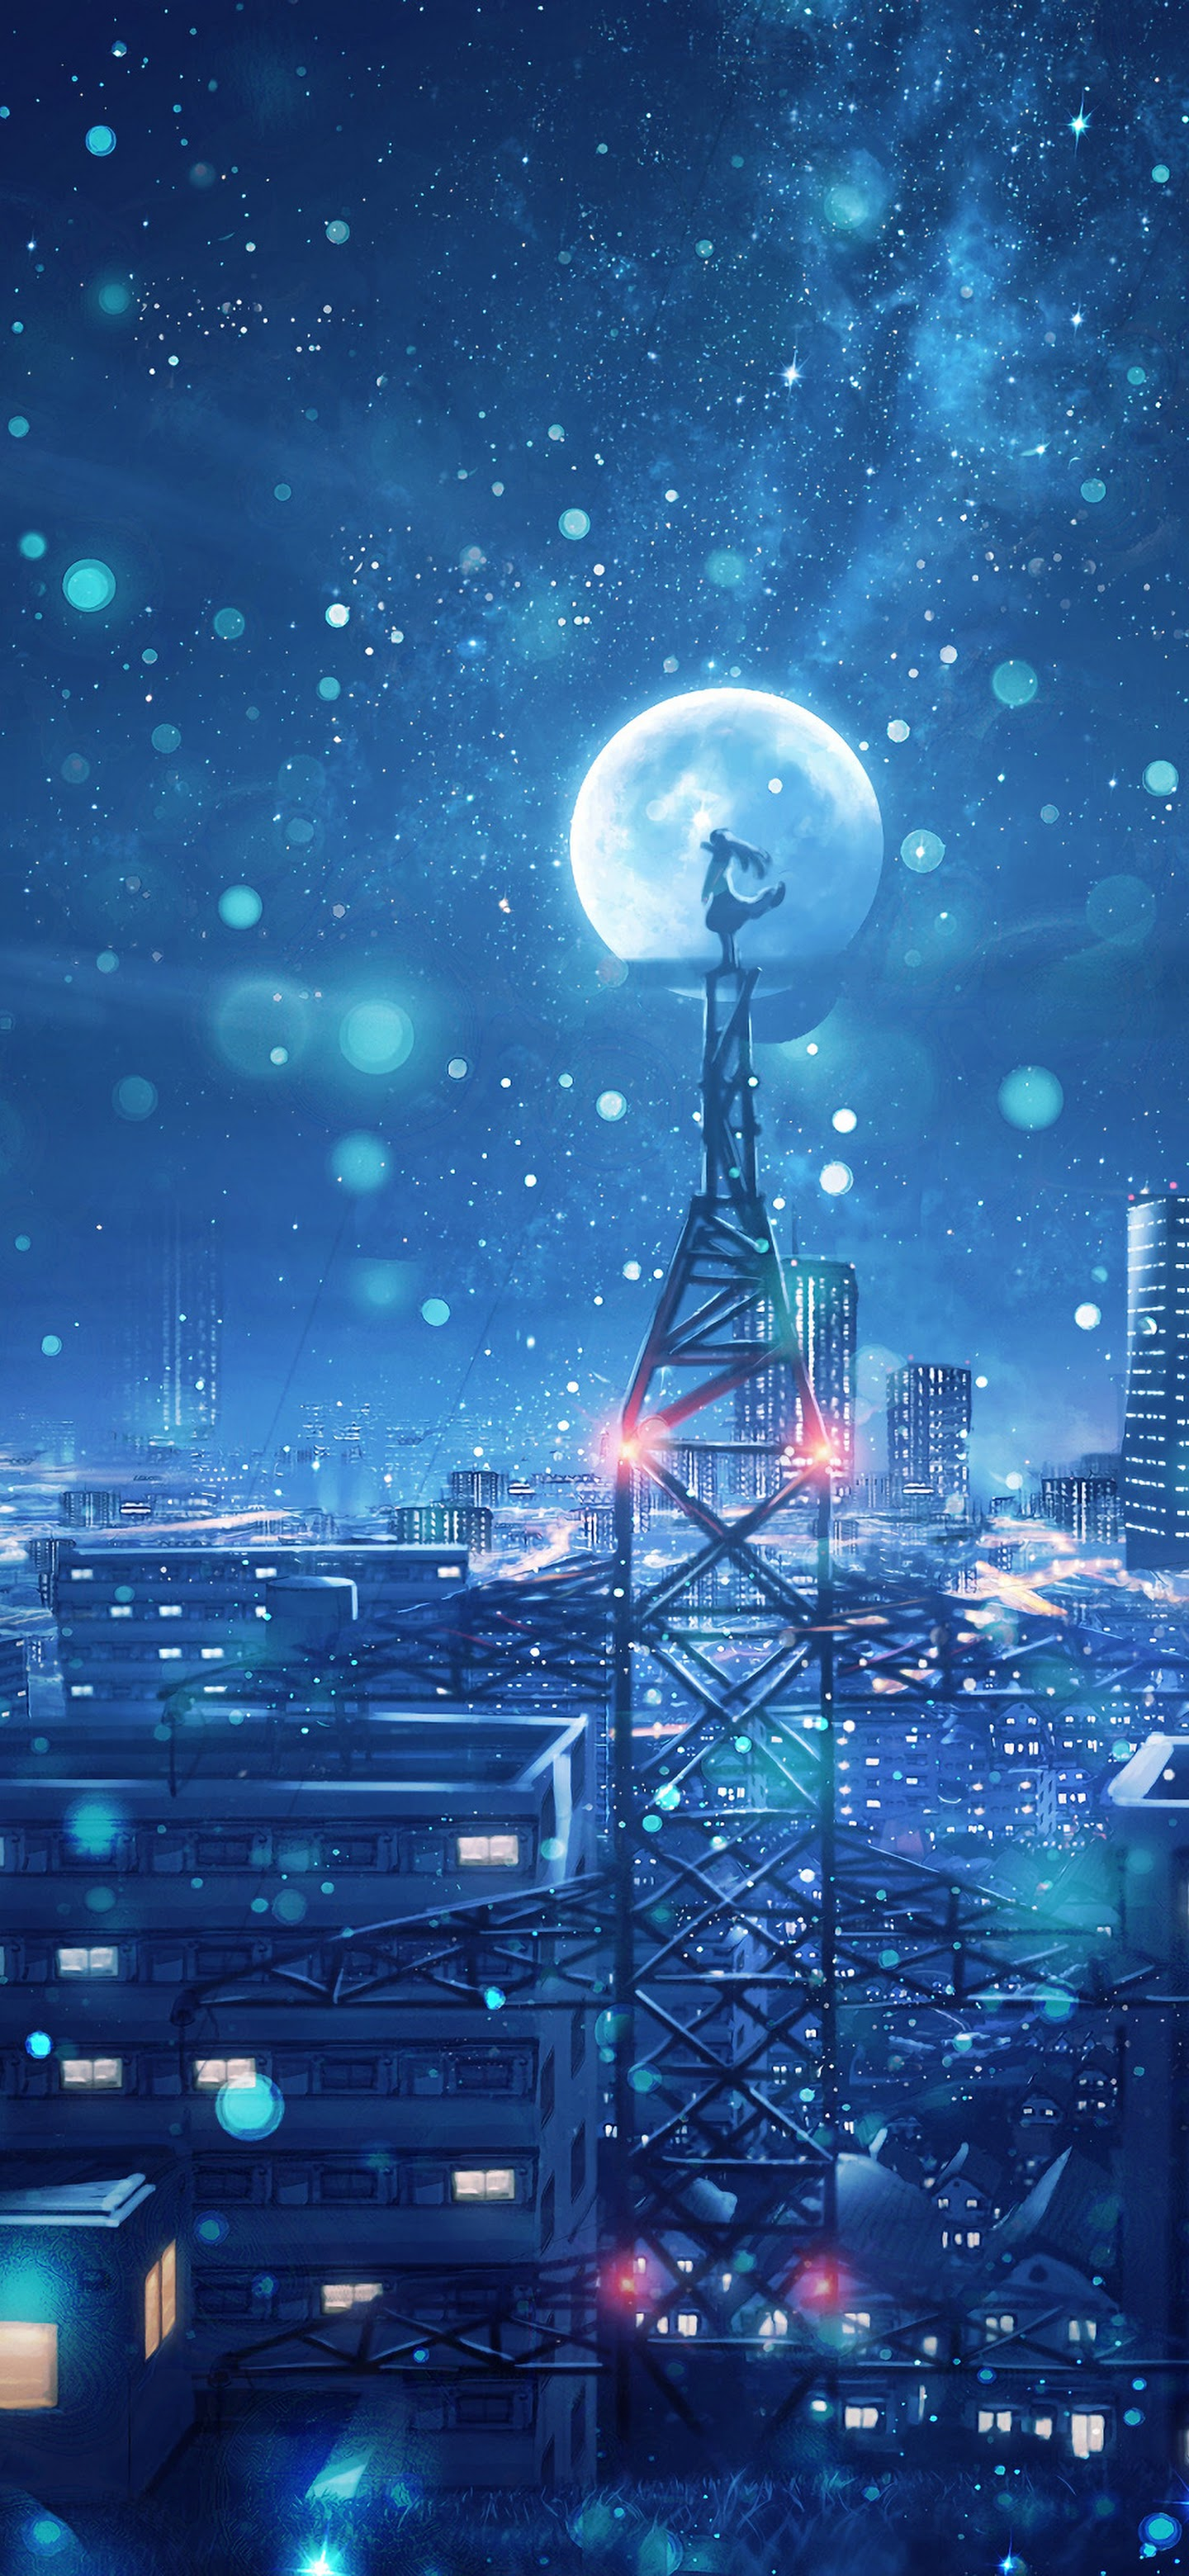 Night Sky City Stars Anime Scenery 4k Wallpaper 135